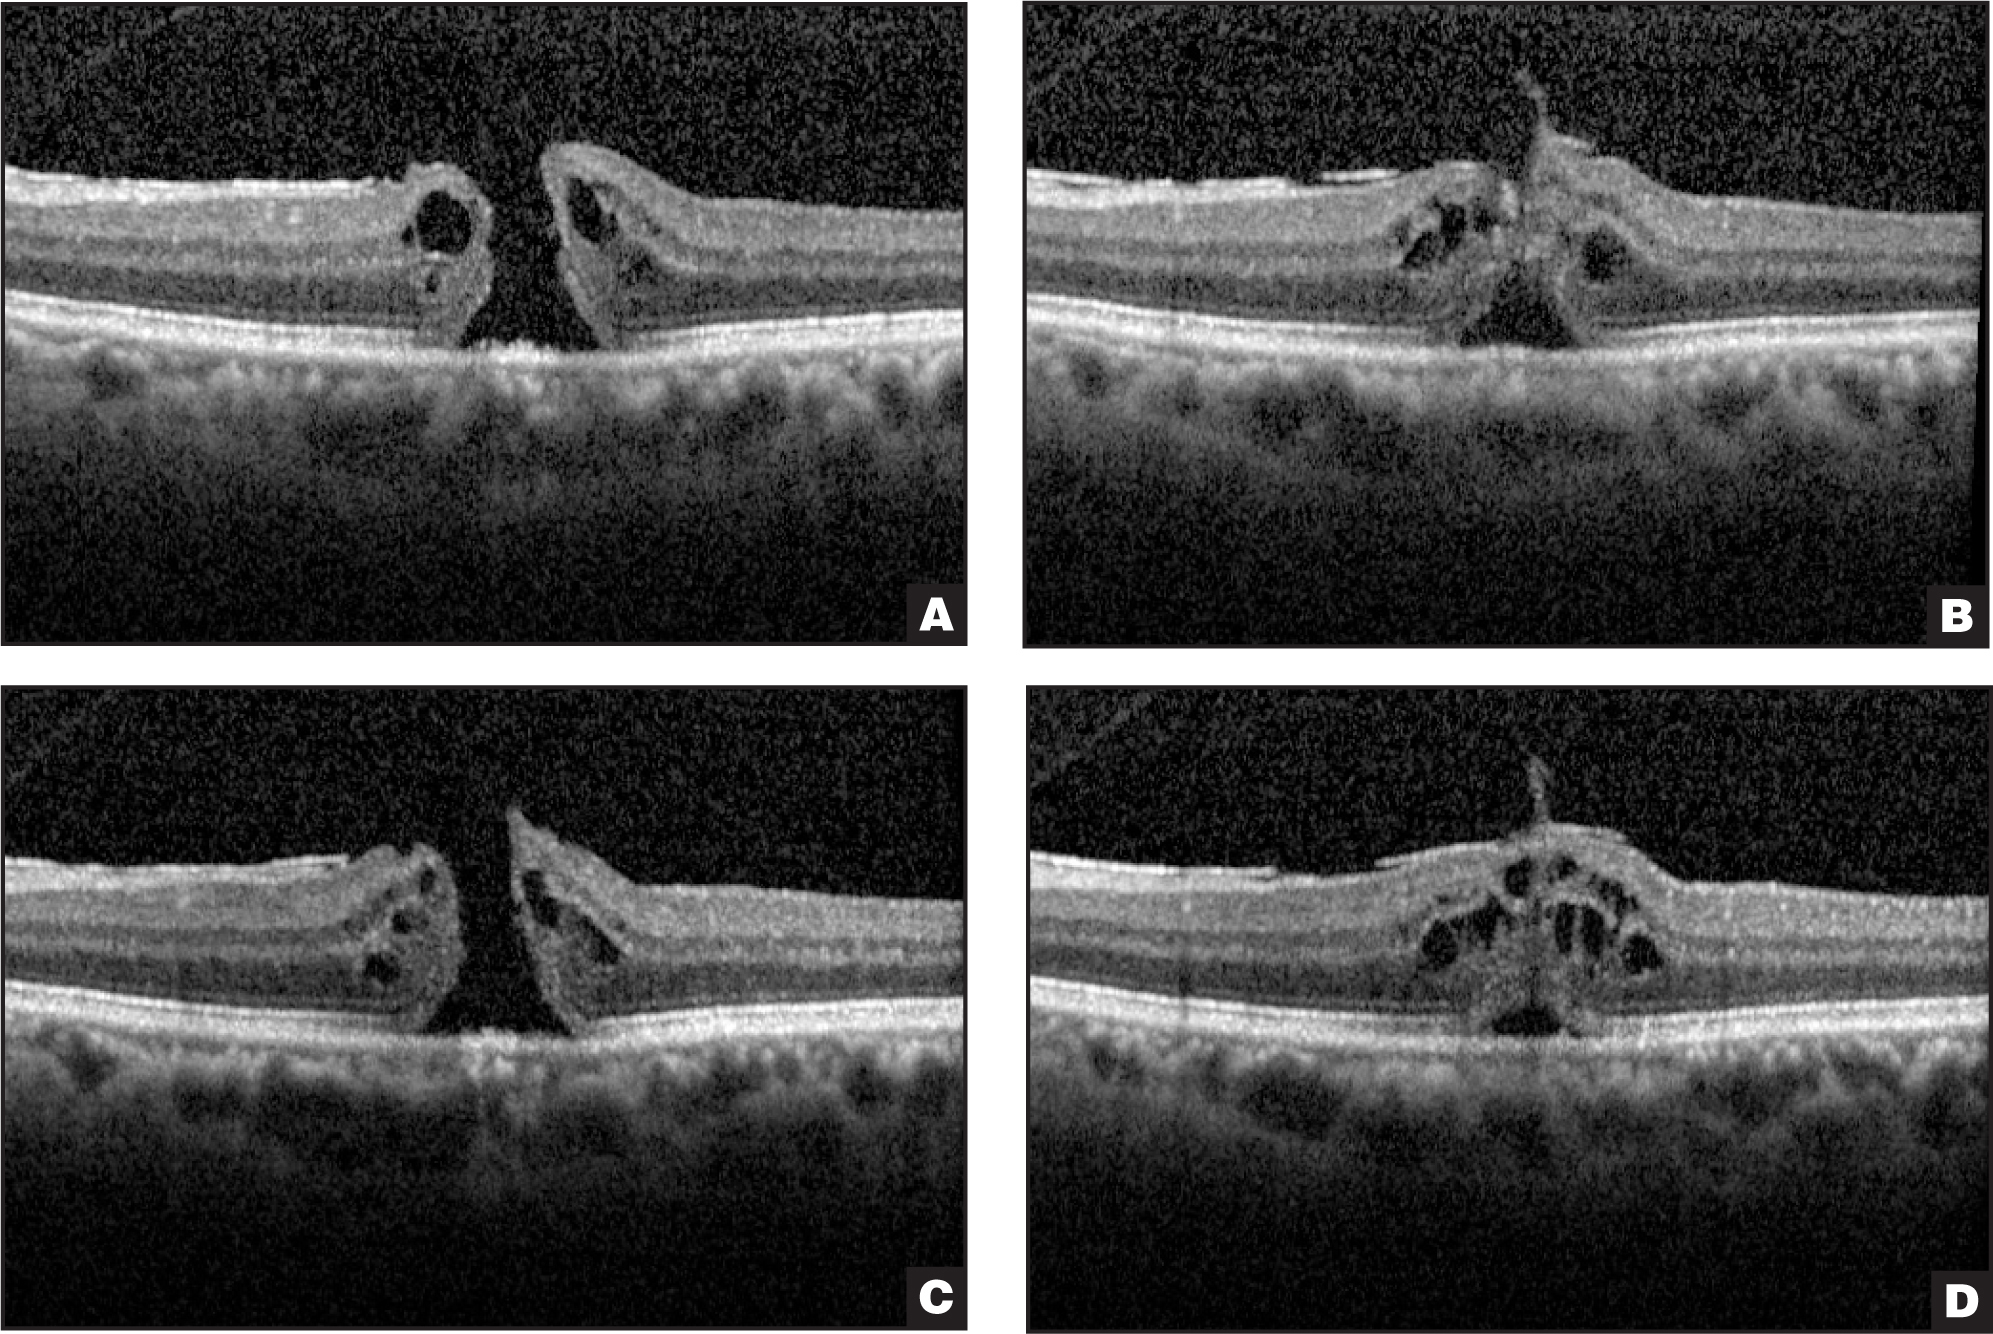 (A) Full-thickness macular hole and epiretinal membrane with (B) paracentral focal adhesion at the time of ocriplasmin injection. (C) At month 2, the full-thickness macular hole and (D) vitreomacular adhesion persisted.